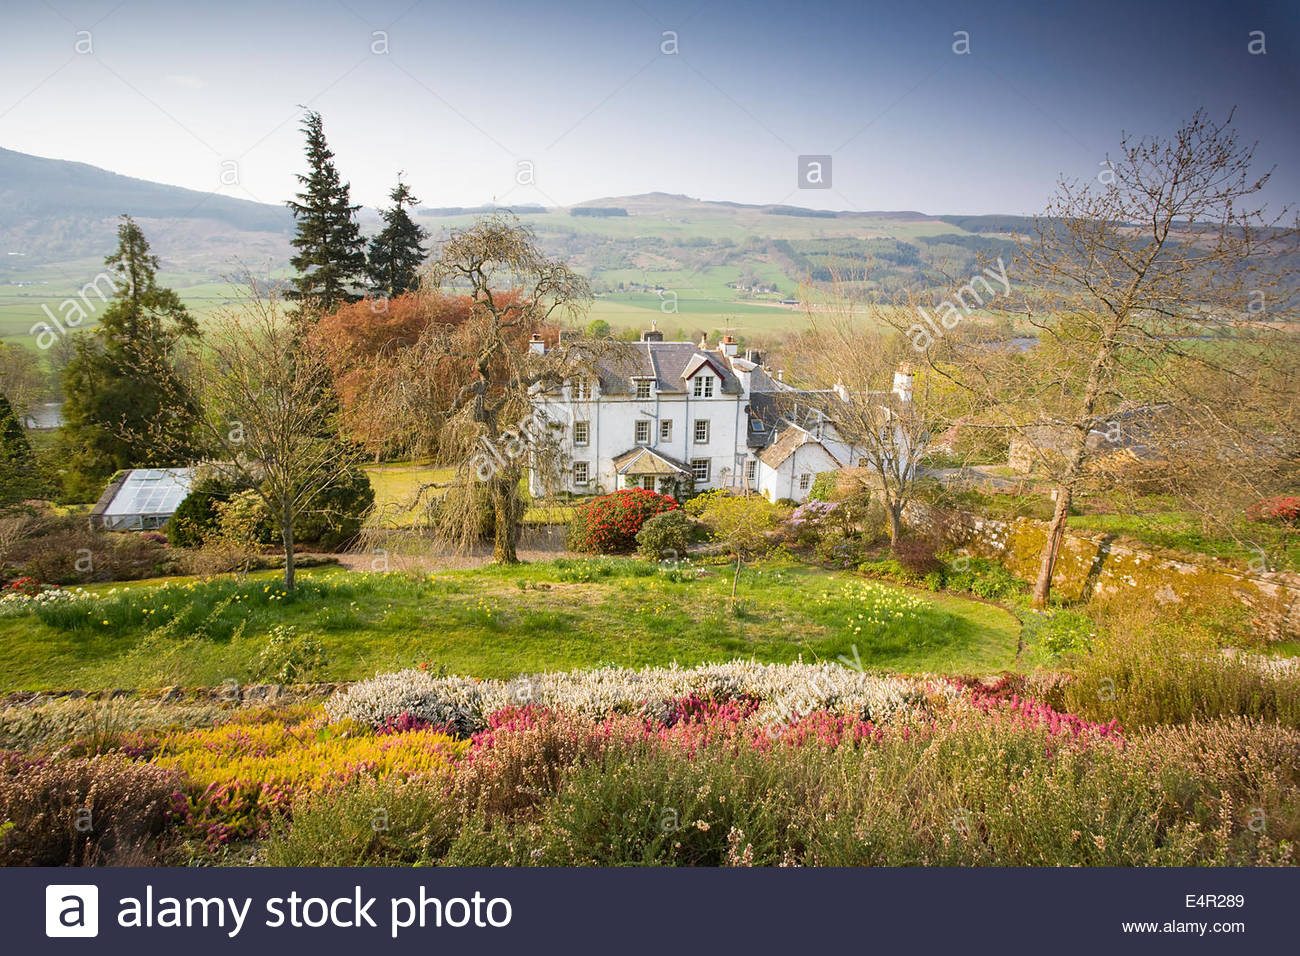 Cluny House Gardens with the house itself visible, near Aberfeldy, Perthshire, Scotland. - Stock Image